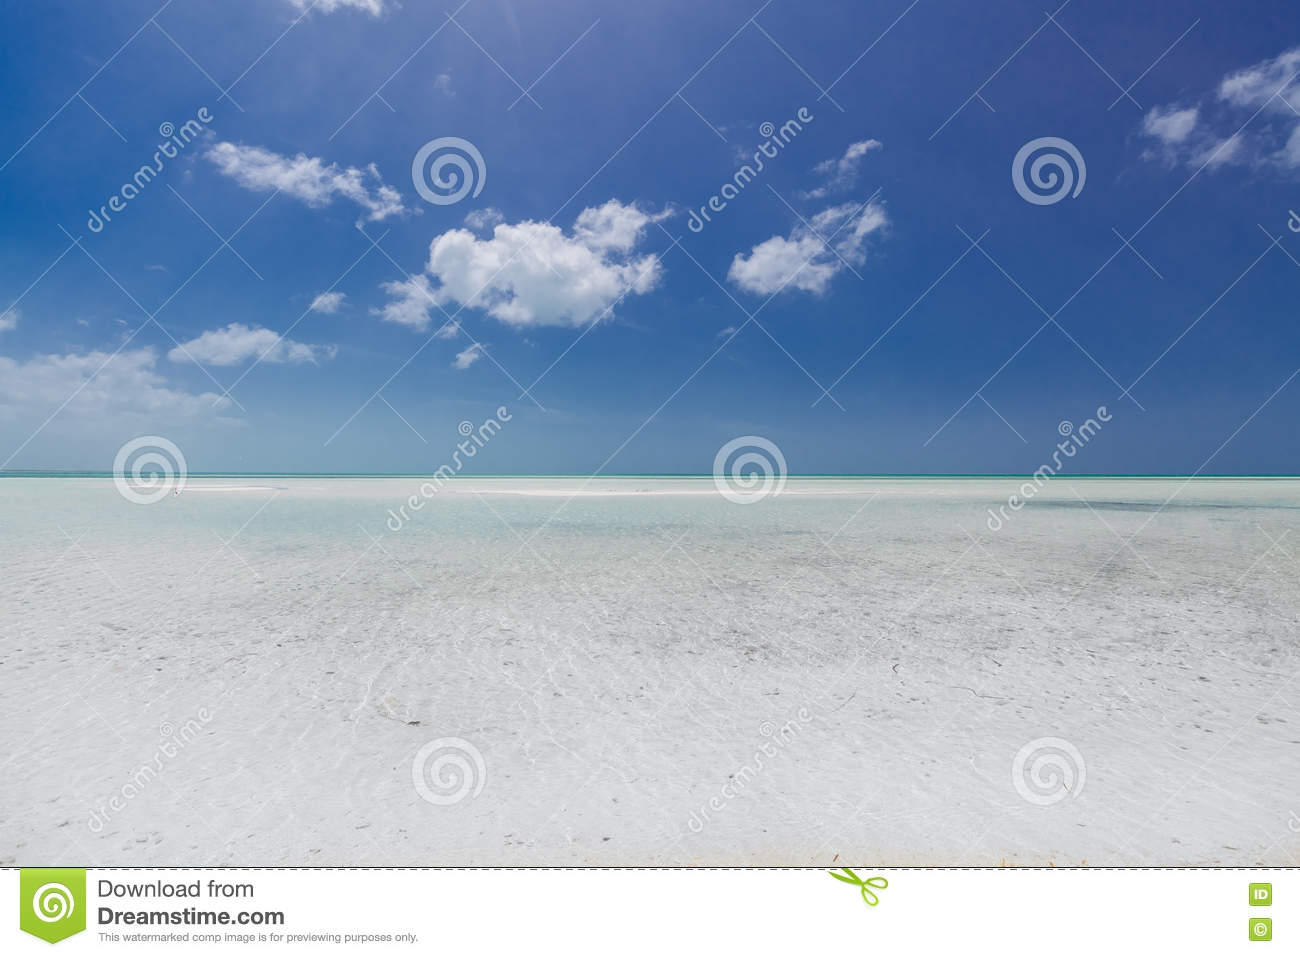 Turquoise, tranquil ocean merging with clear beautiful sky at horizon line on sunny warm day